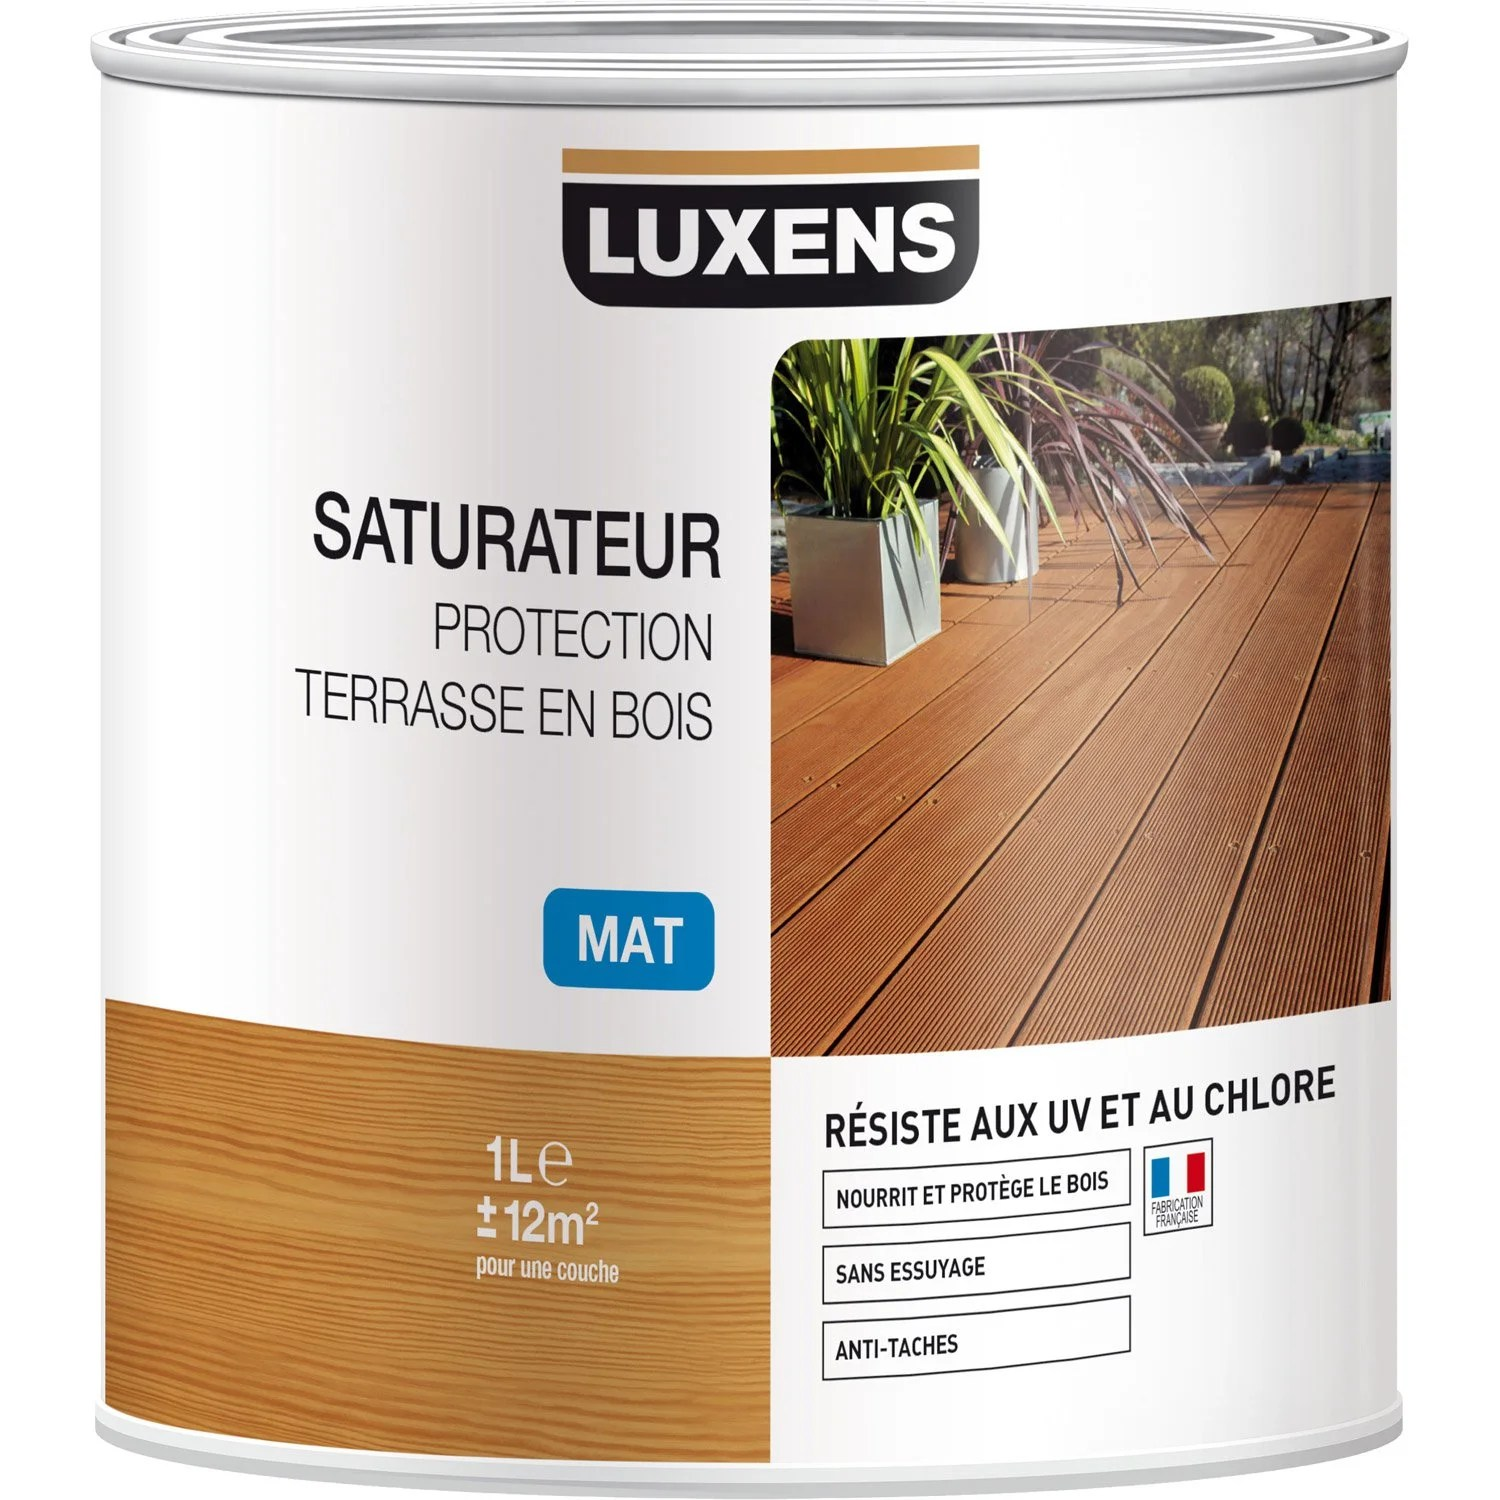 Saturateur Terrasse Bois Leroy Merlin Saturateur Luxens Saturateur Protection Terrasse En Bois 1